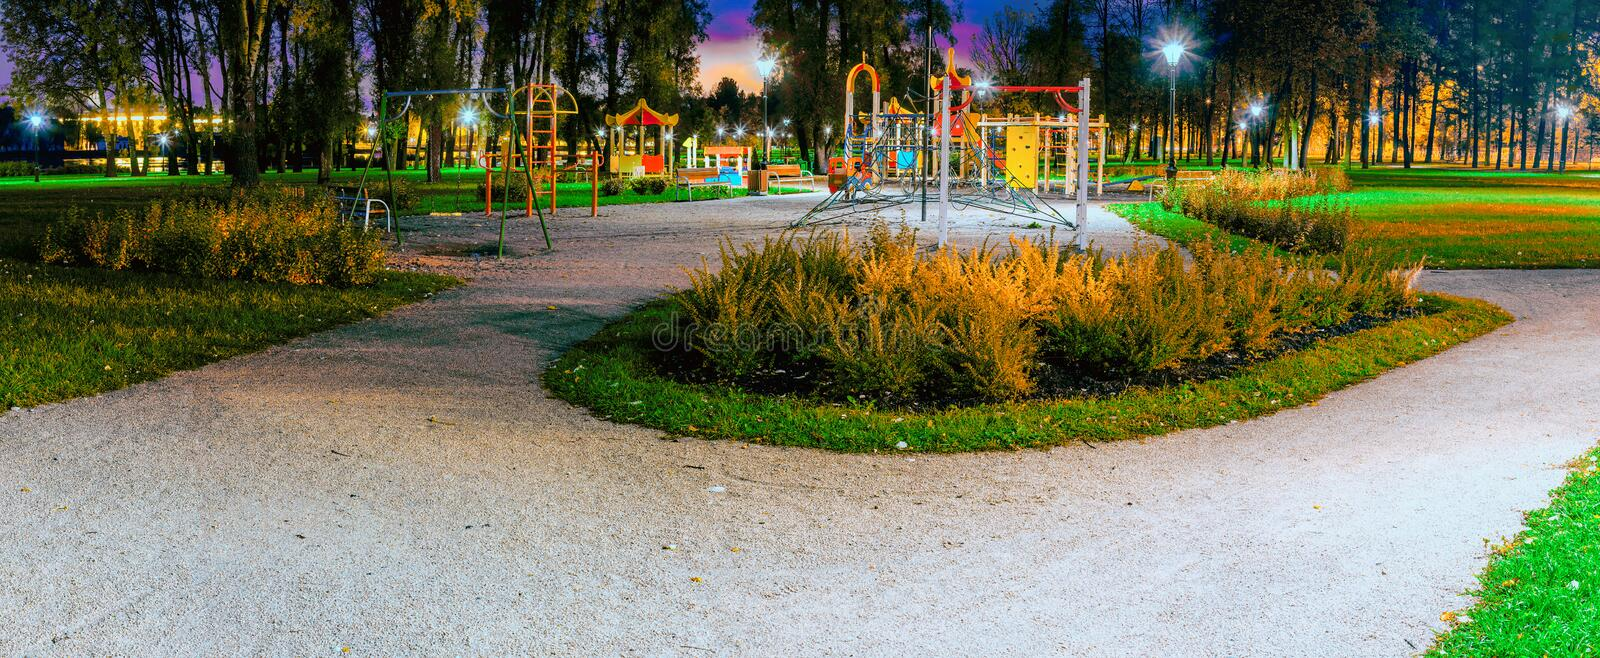 Colorful children`s Playground in the light of the night lanterns. Night city landscape. Colorful playground in the light of night lights. Night city landscape stock image